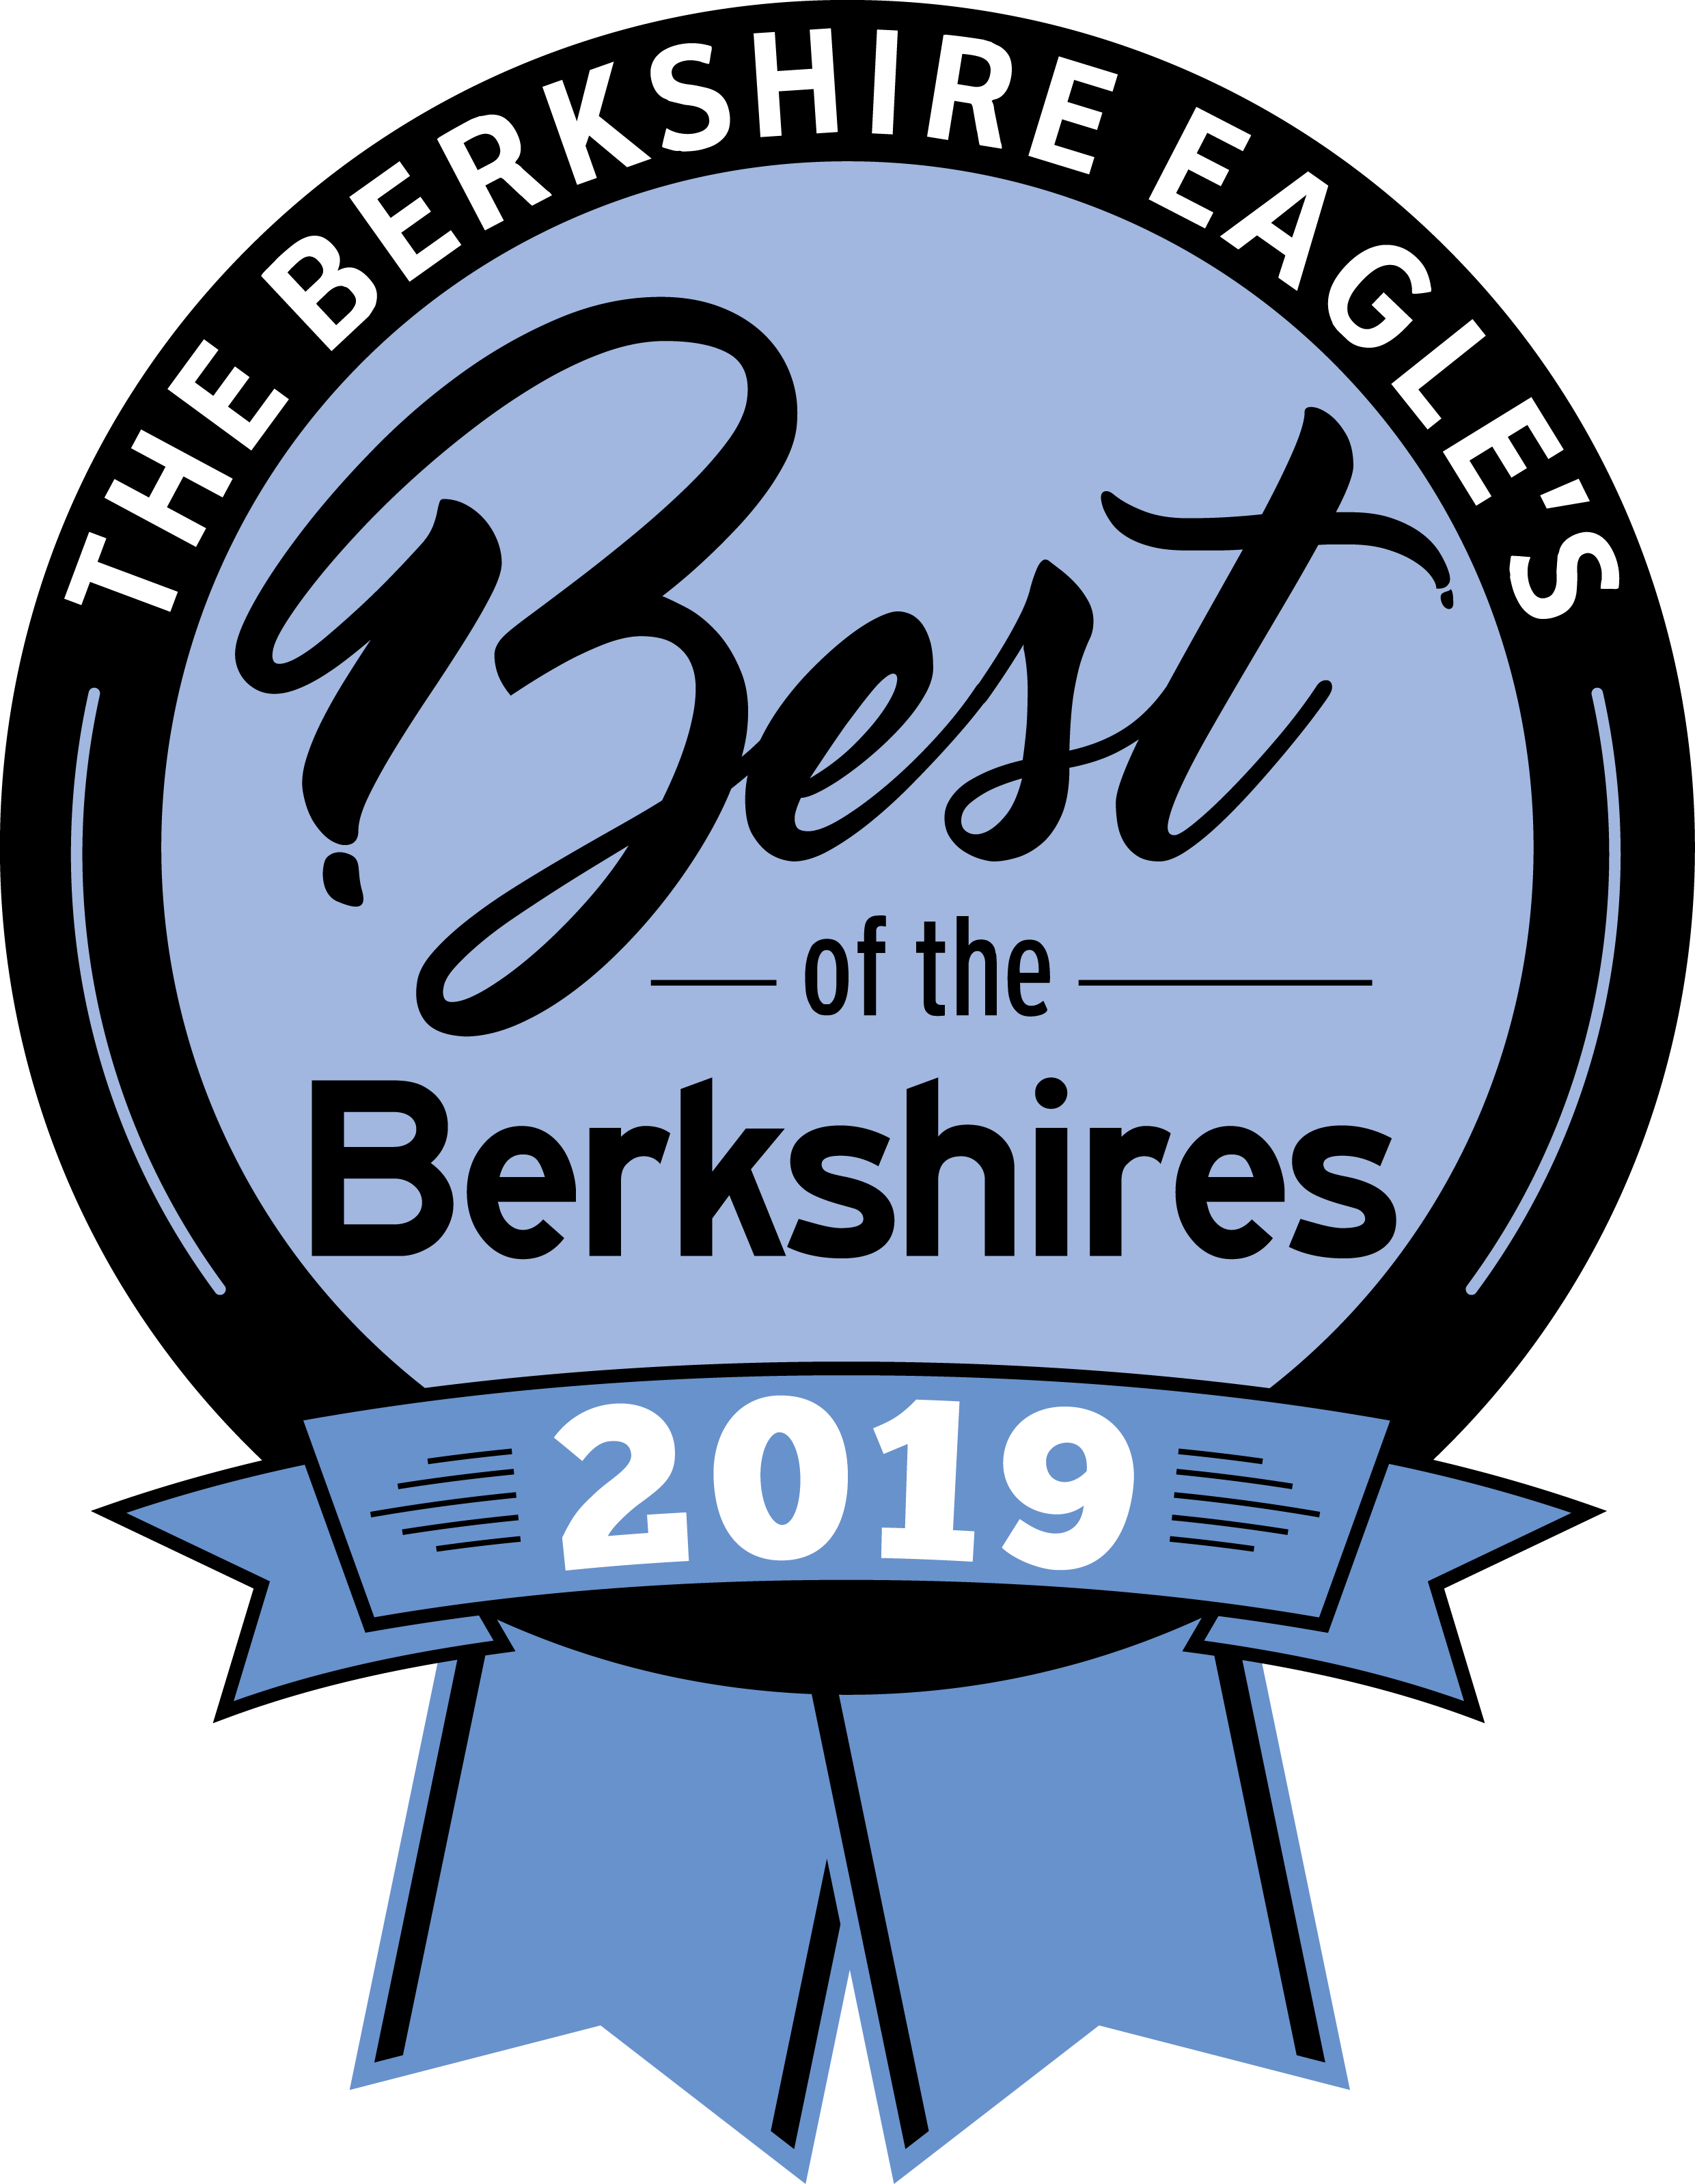 best of the berkshires 2019 award